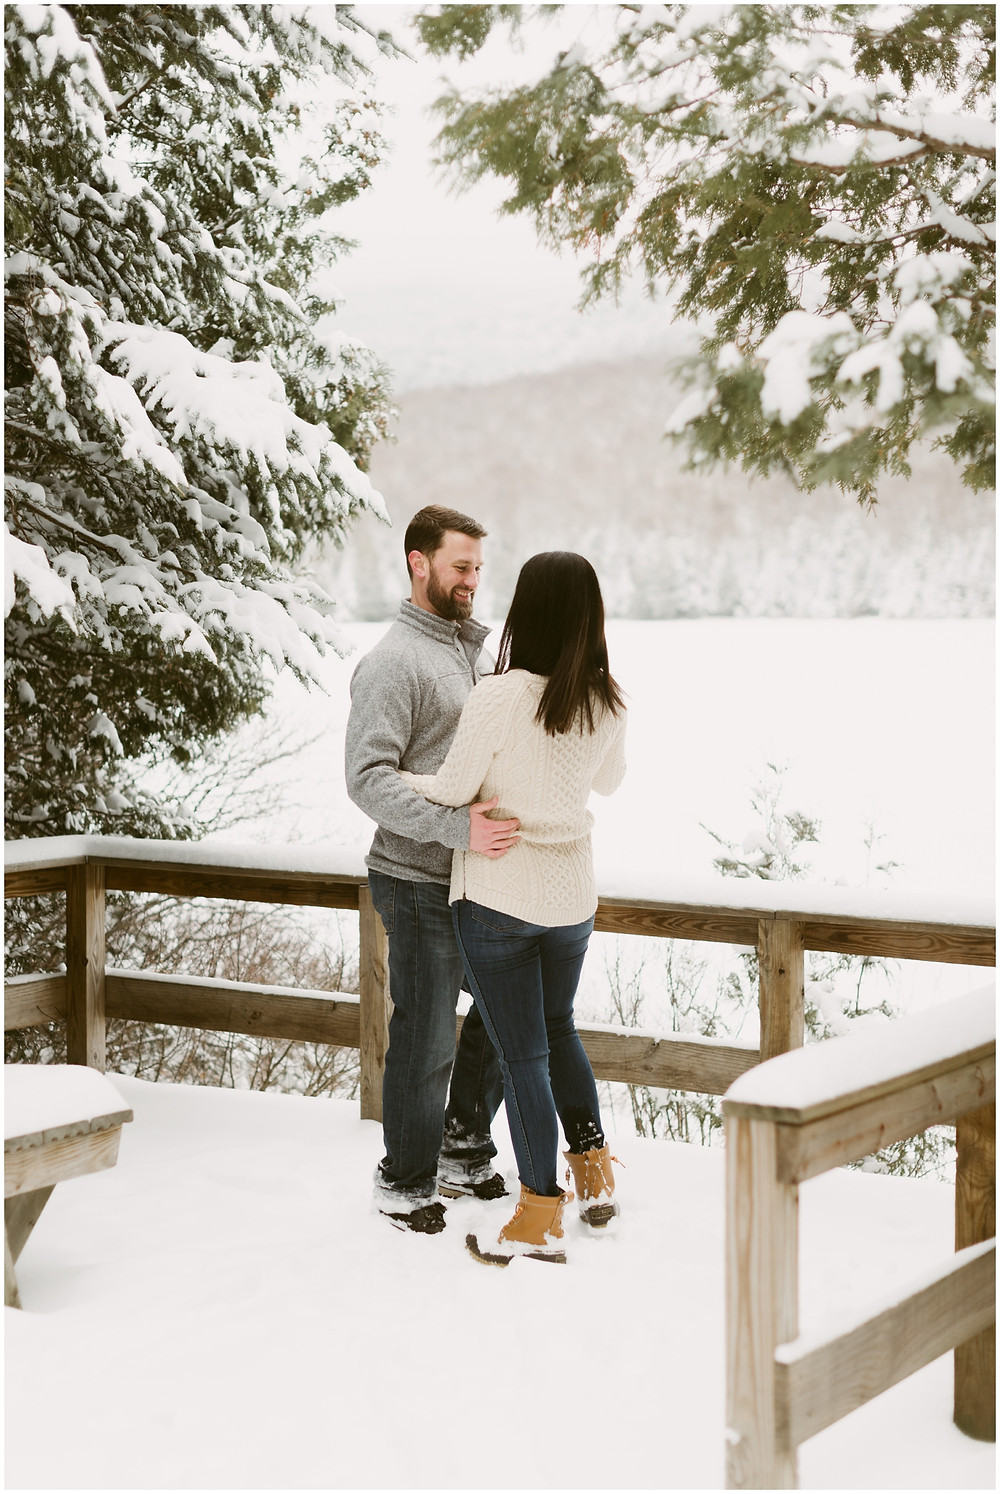 Wintery engagement photos in the Adirondack Mountains by Mountainaire Gatherings